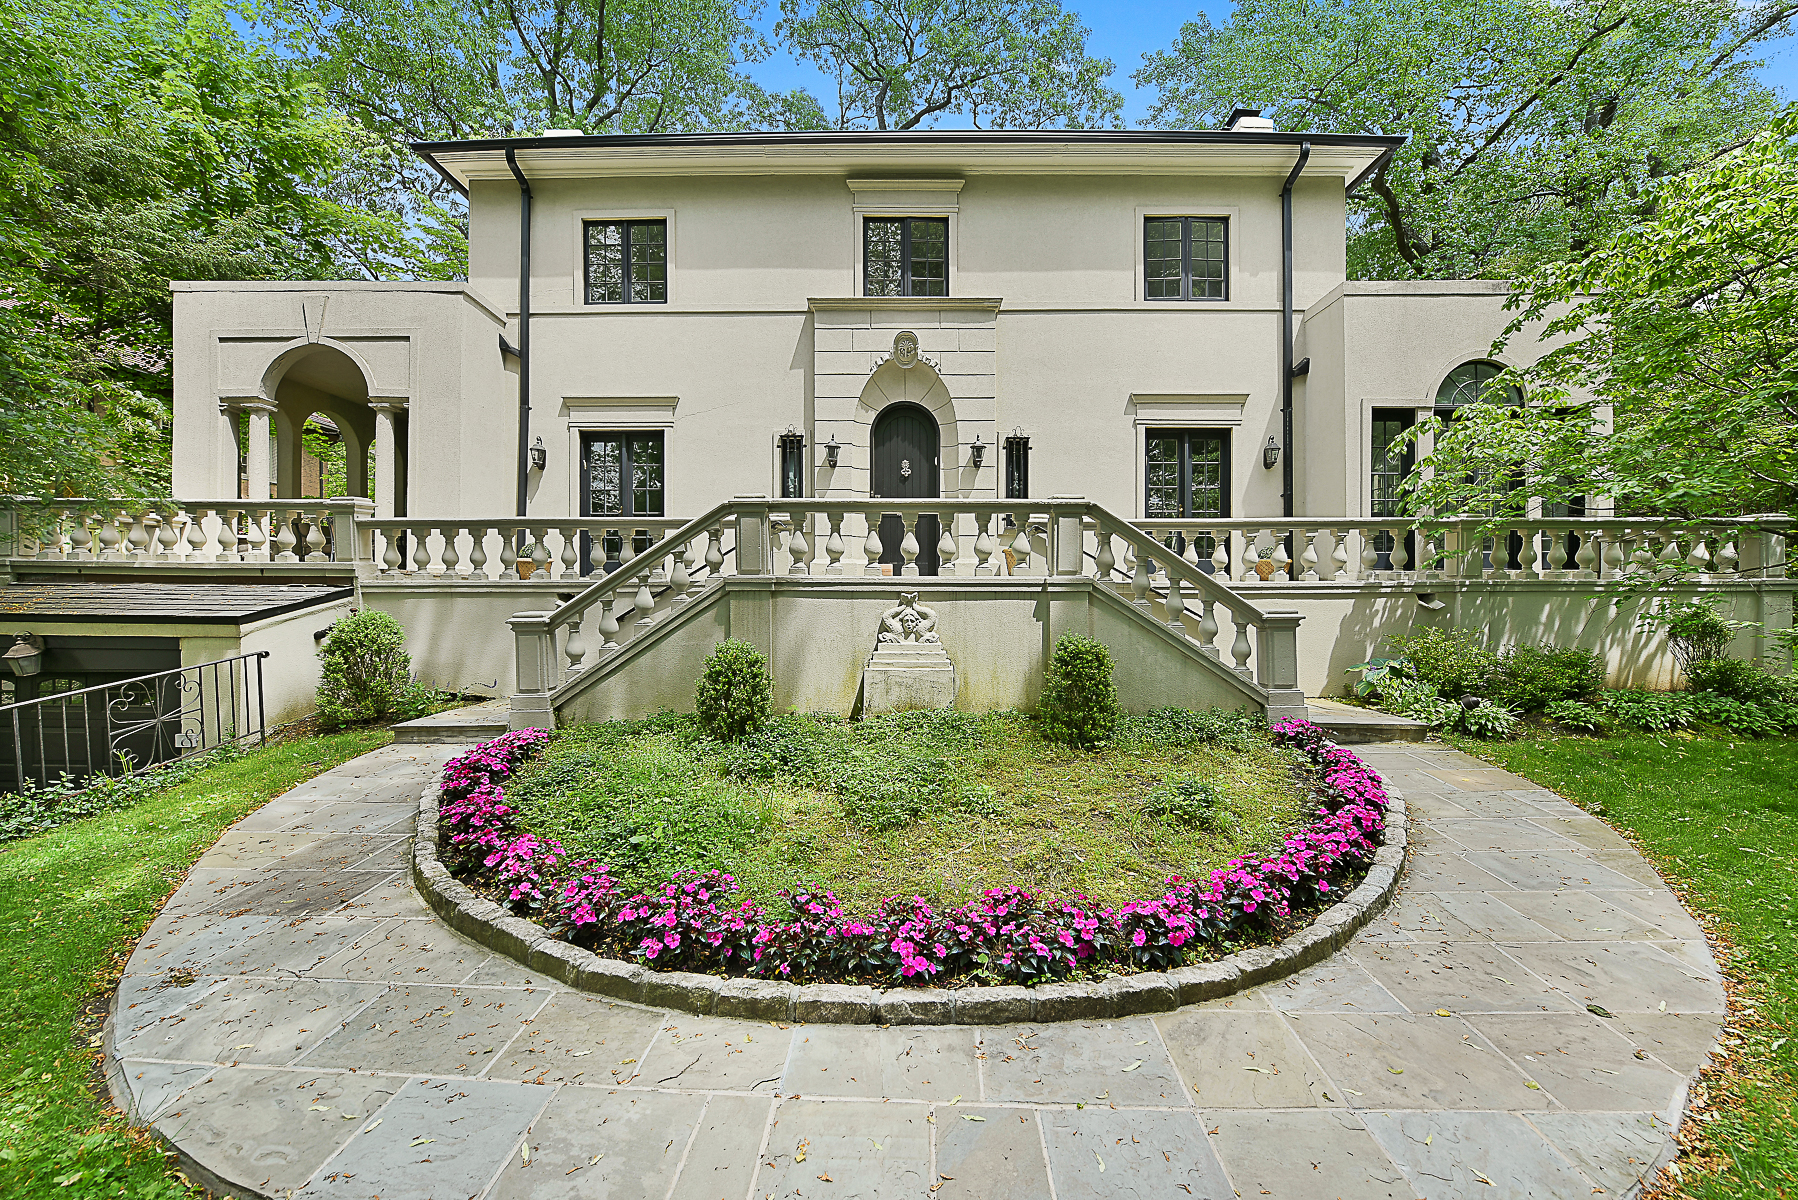 Maison unifamiliale pour l Vente à Historic Fieldston Exceptional Mediterranean Revival 4704 Delafield Avenue Riverdale, Bronx, New York, 10471 États-Unis